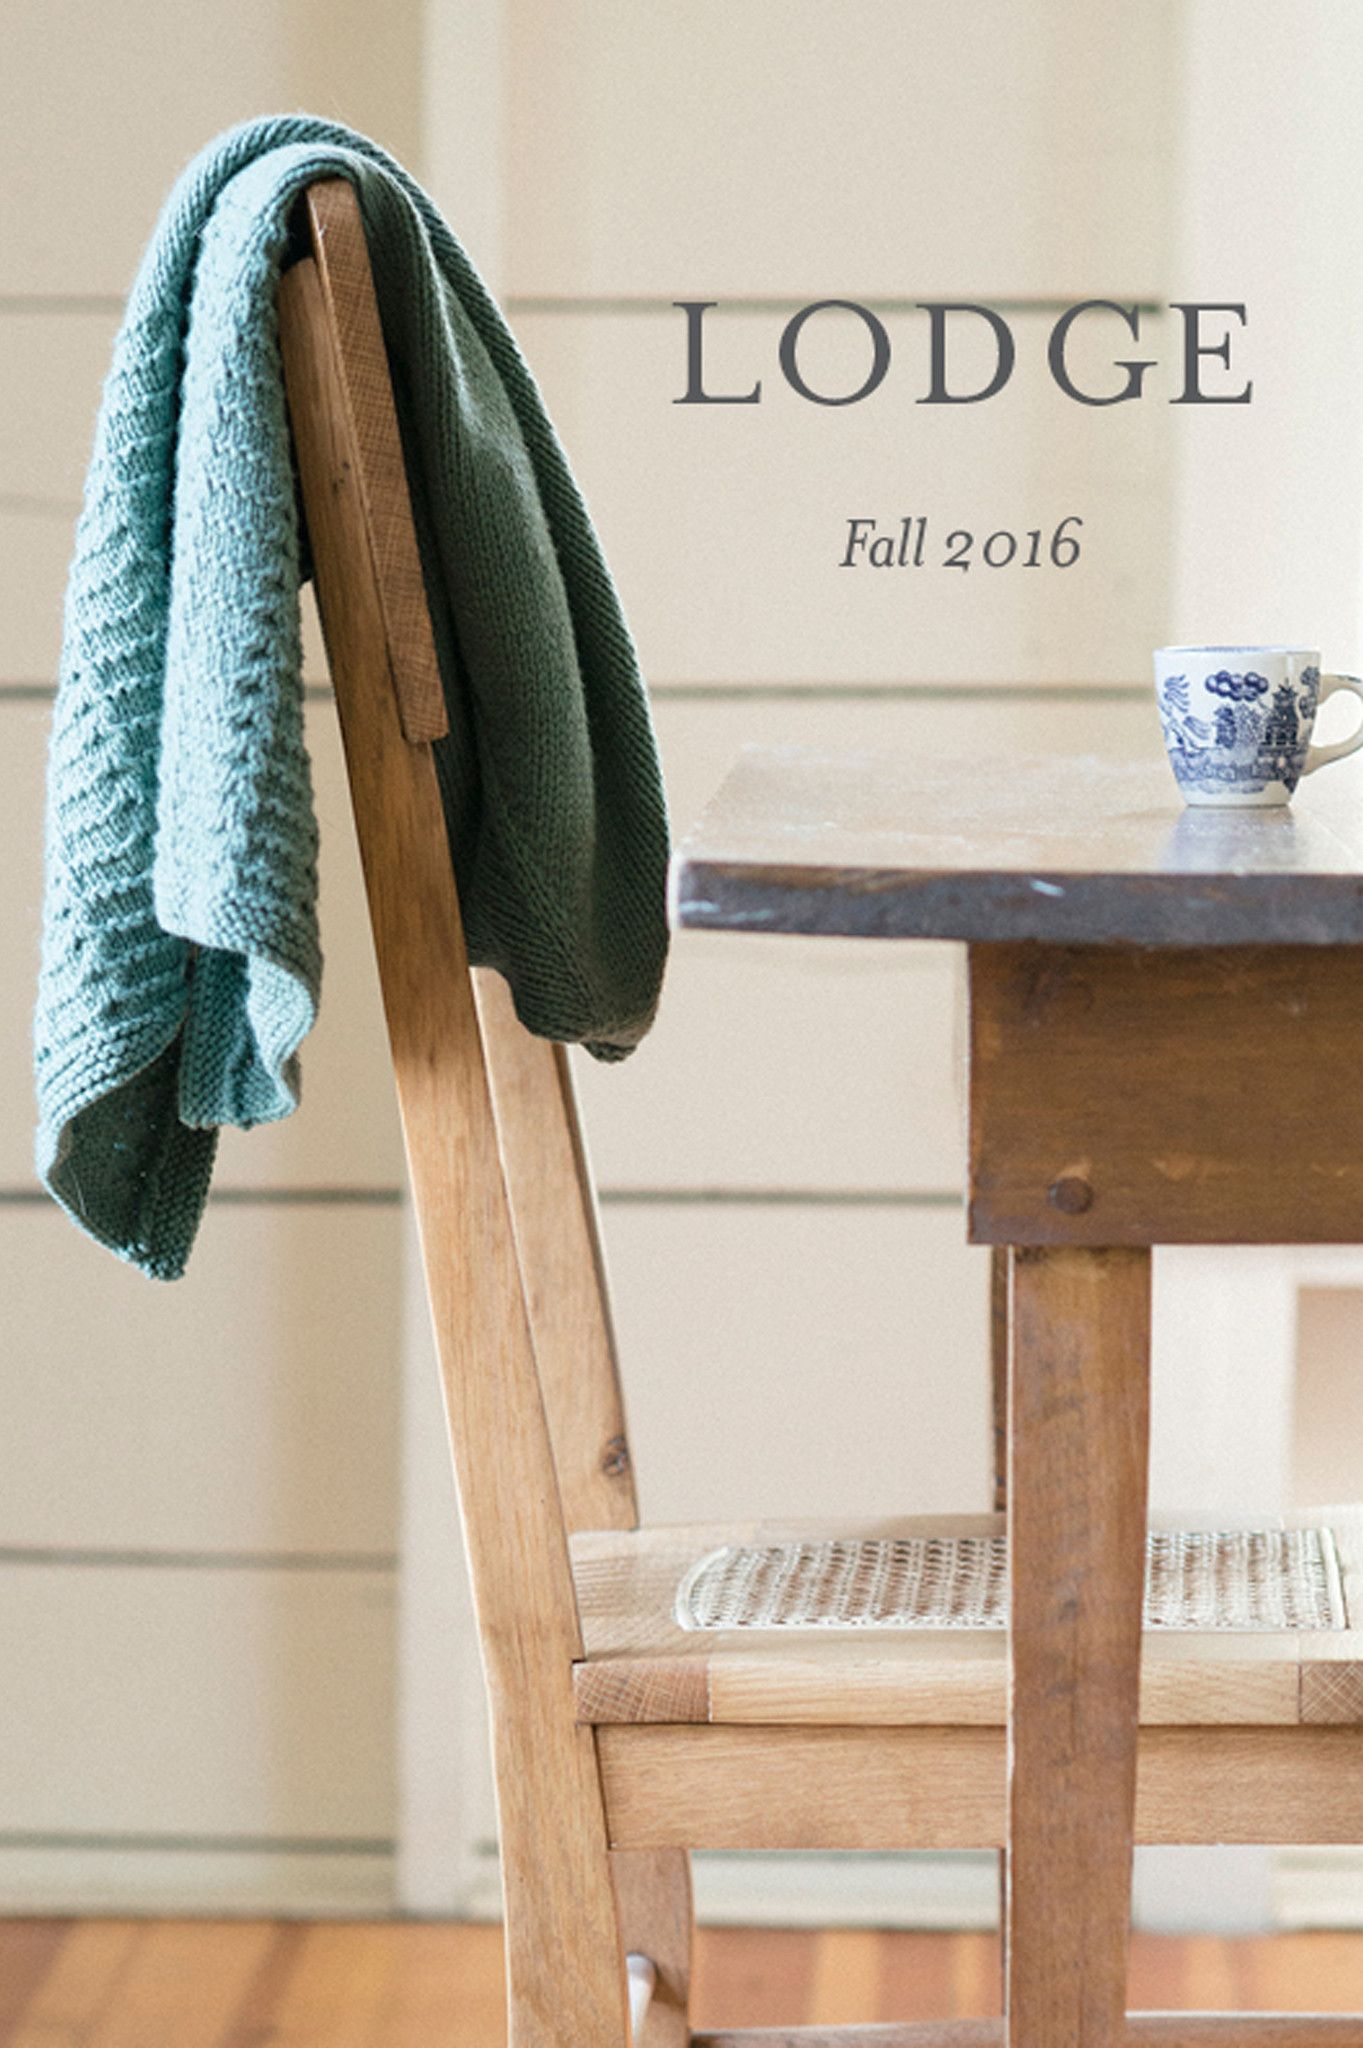 lodge: fall 2016 / a collection of three new knits from the quince design team, in lark, osprey, and phoebe / designs by melissa labarre, cecily glowik macdonald, and bristol ivy / from quince & co.